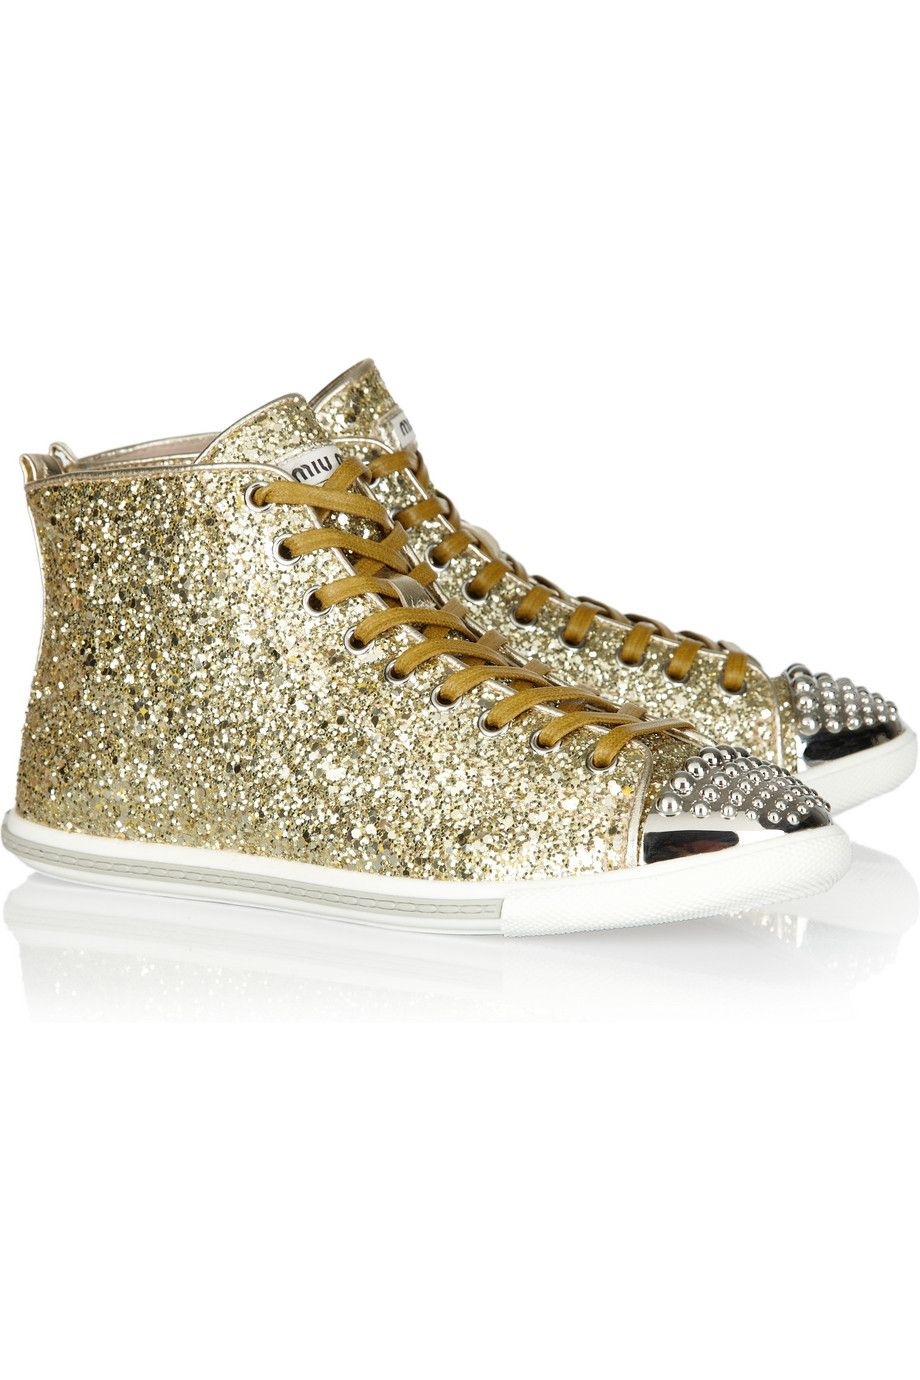 Gold Glitter-finished leather high-top